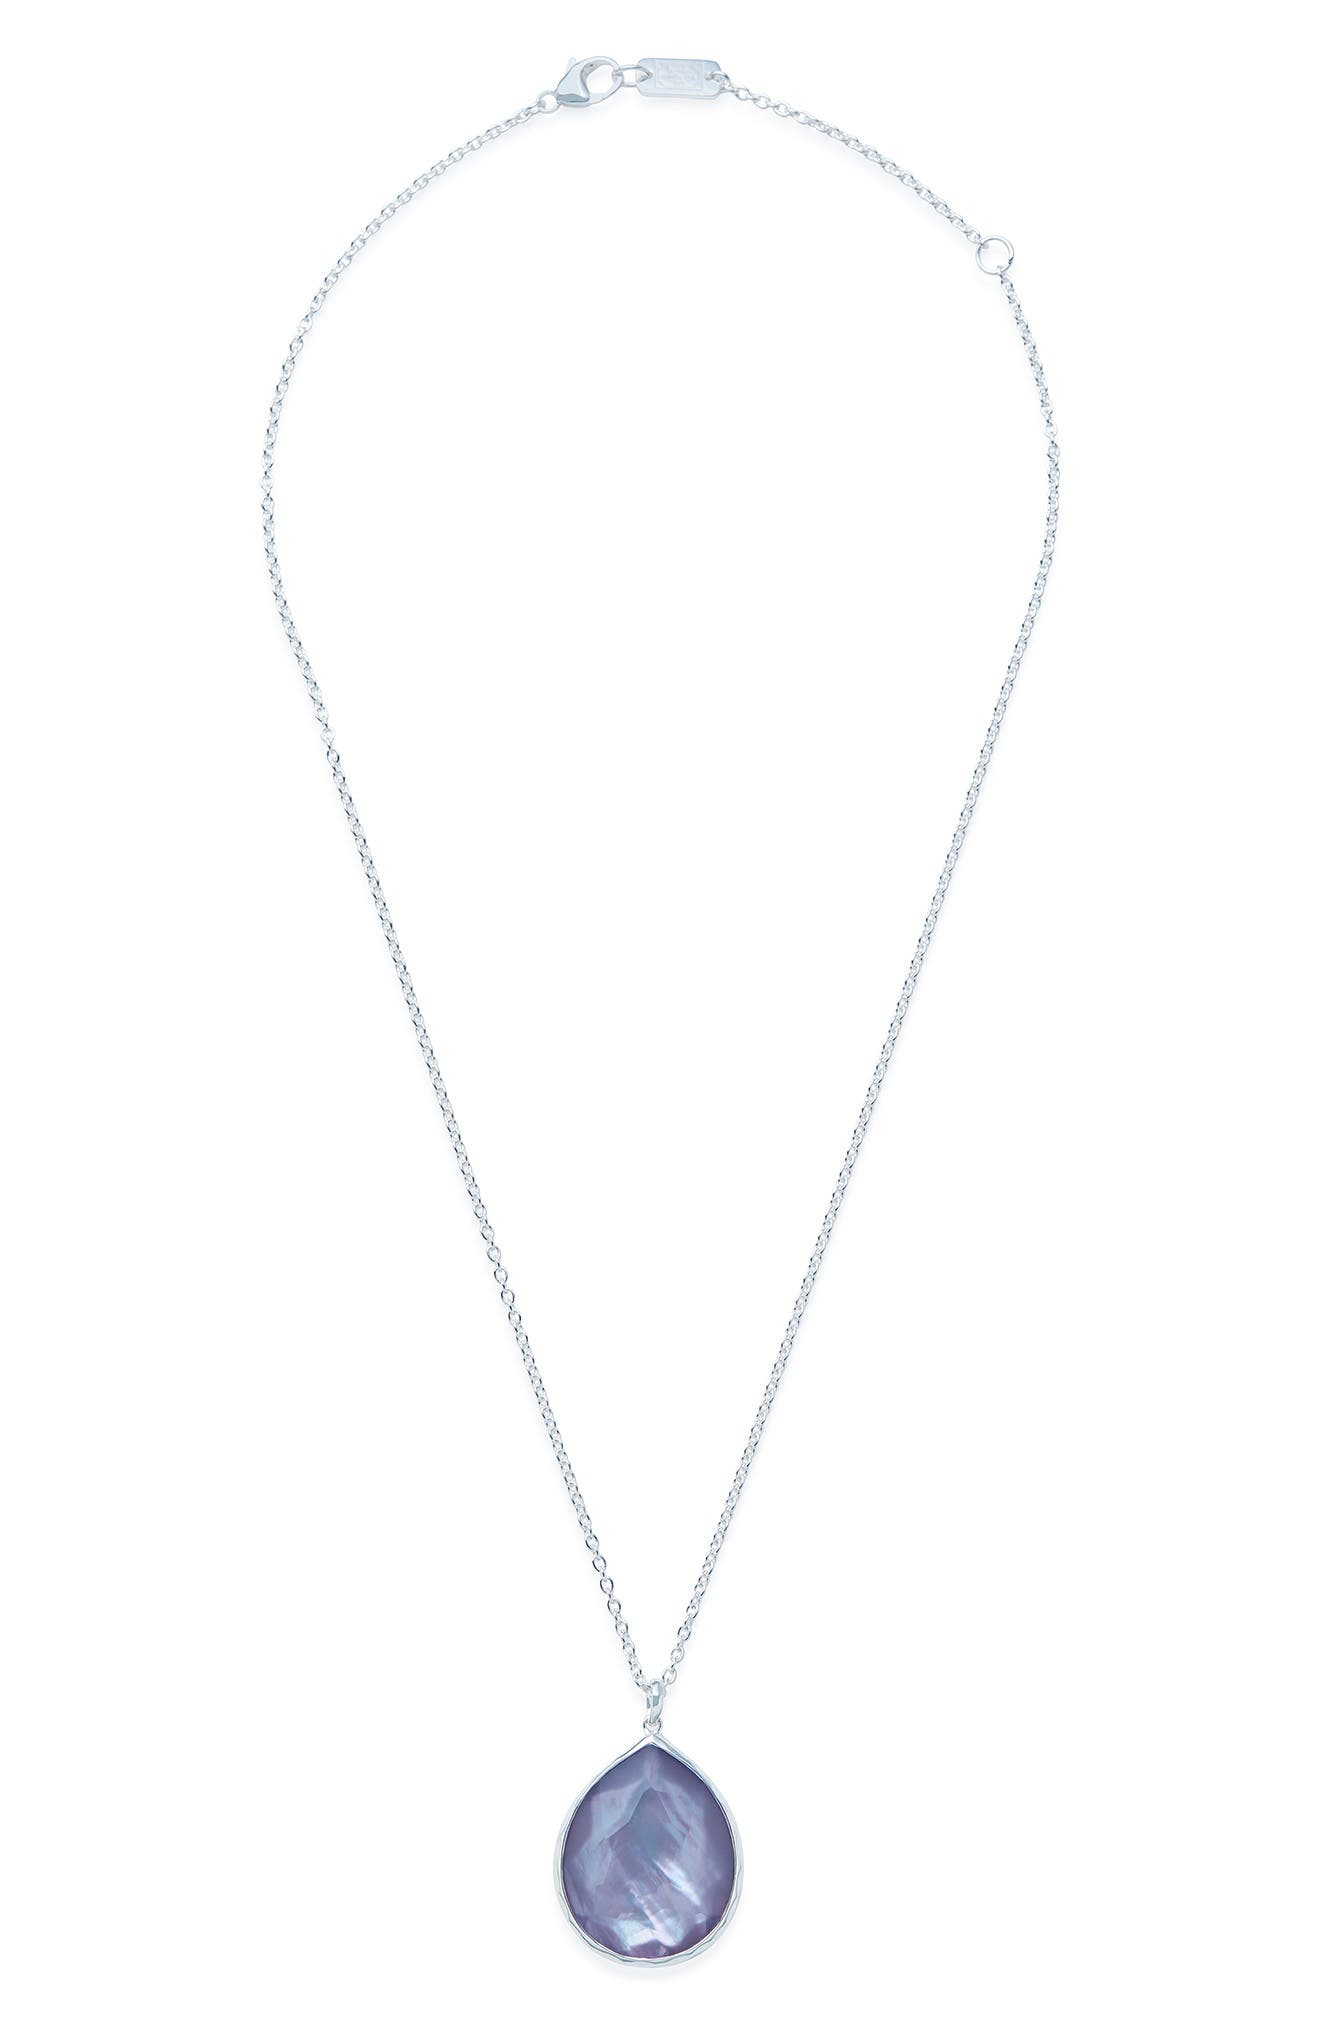 'Wonderland' Large Teardrop Pendant Necklace,                         Main,                         color, Silver/ Periwinkle